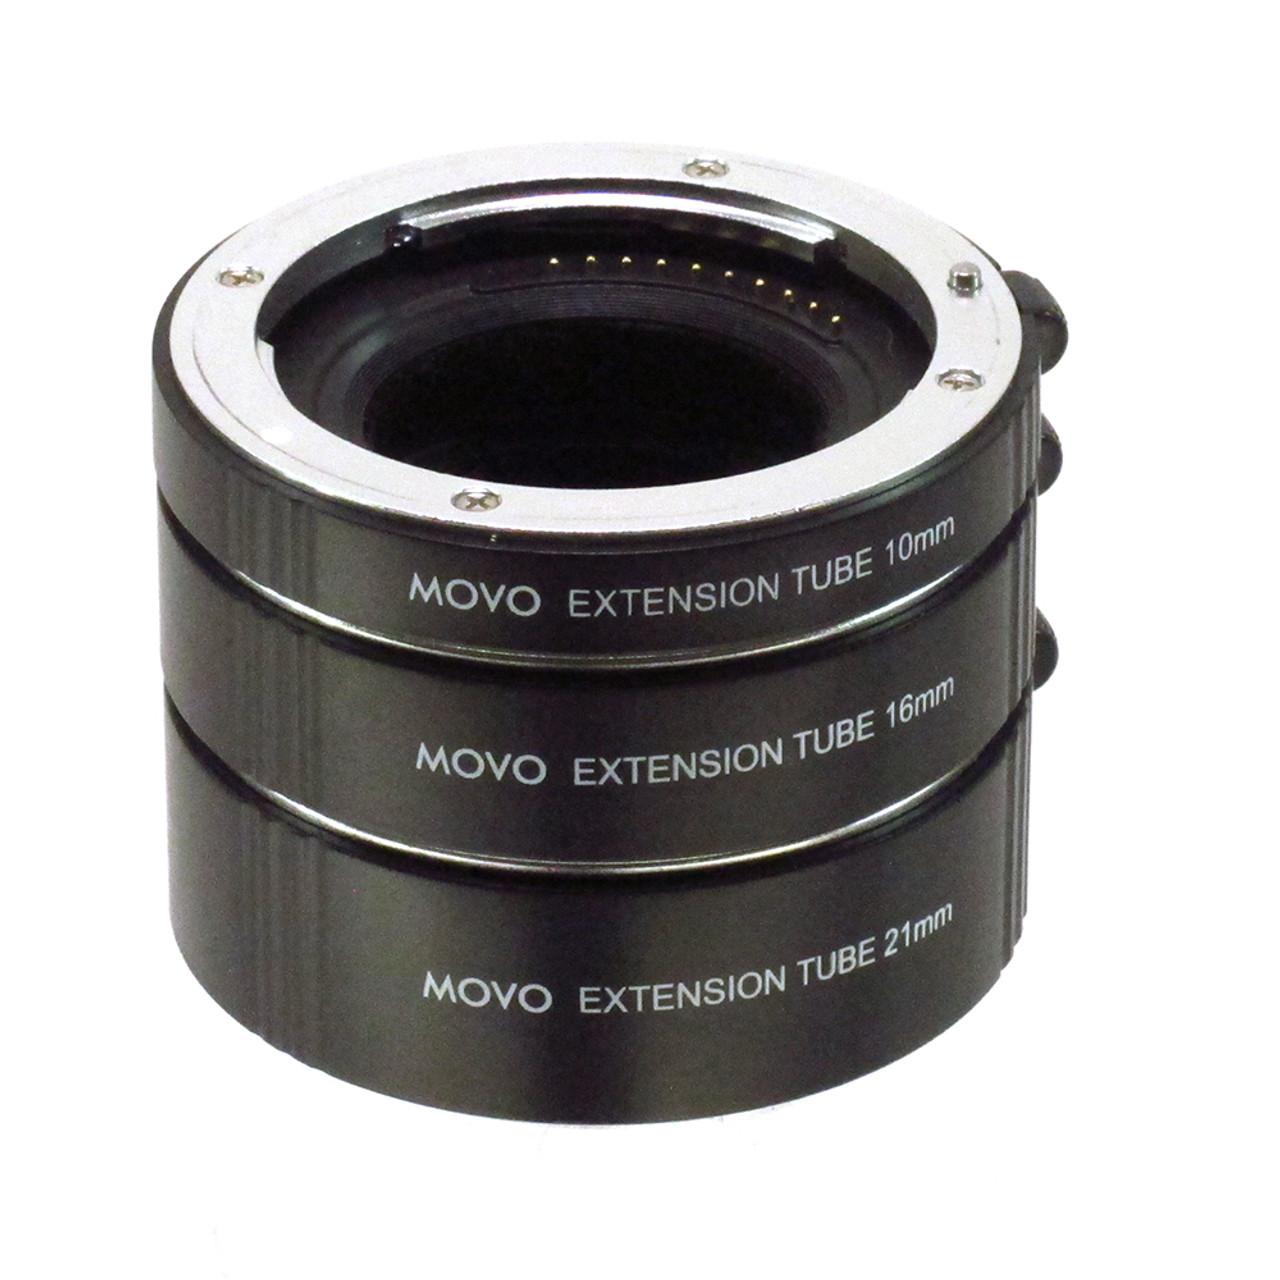 USED MOVO EXT TUBE SET (SONY)